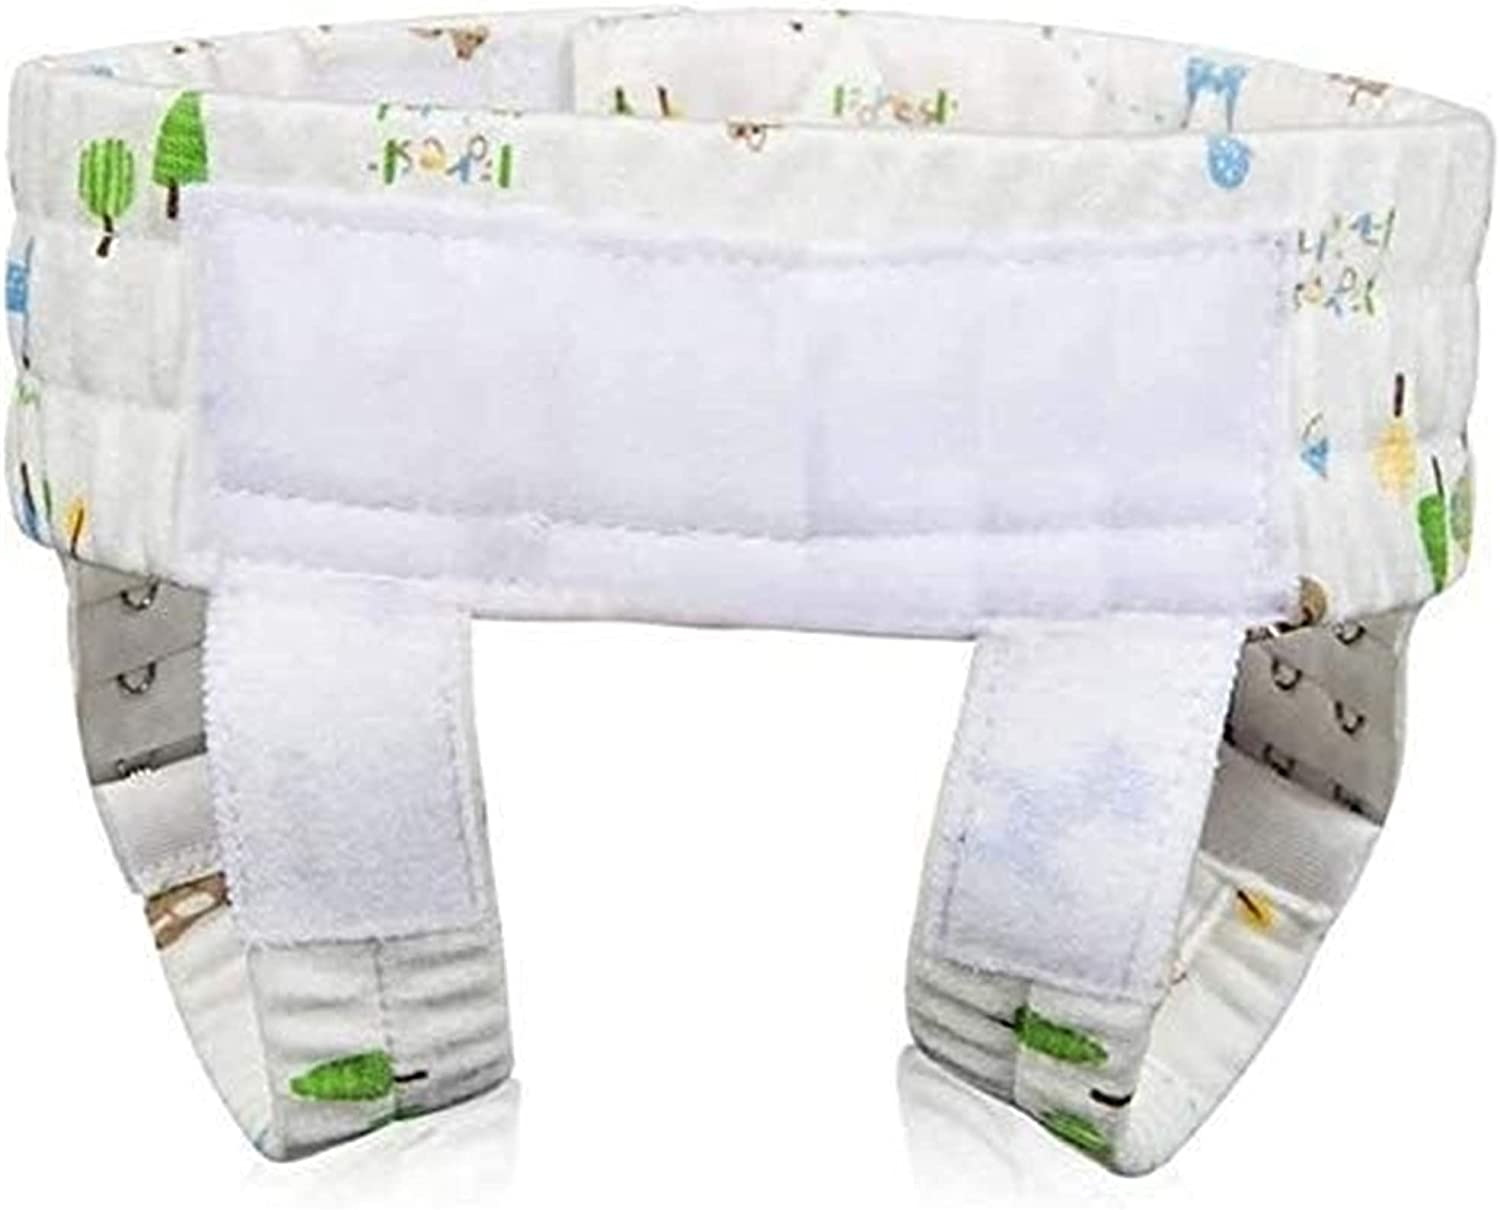 WYFC Adjustable San Ranking TOP12 Diego Mall Baby Hernia Belt Support Bowel Small Infant for